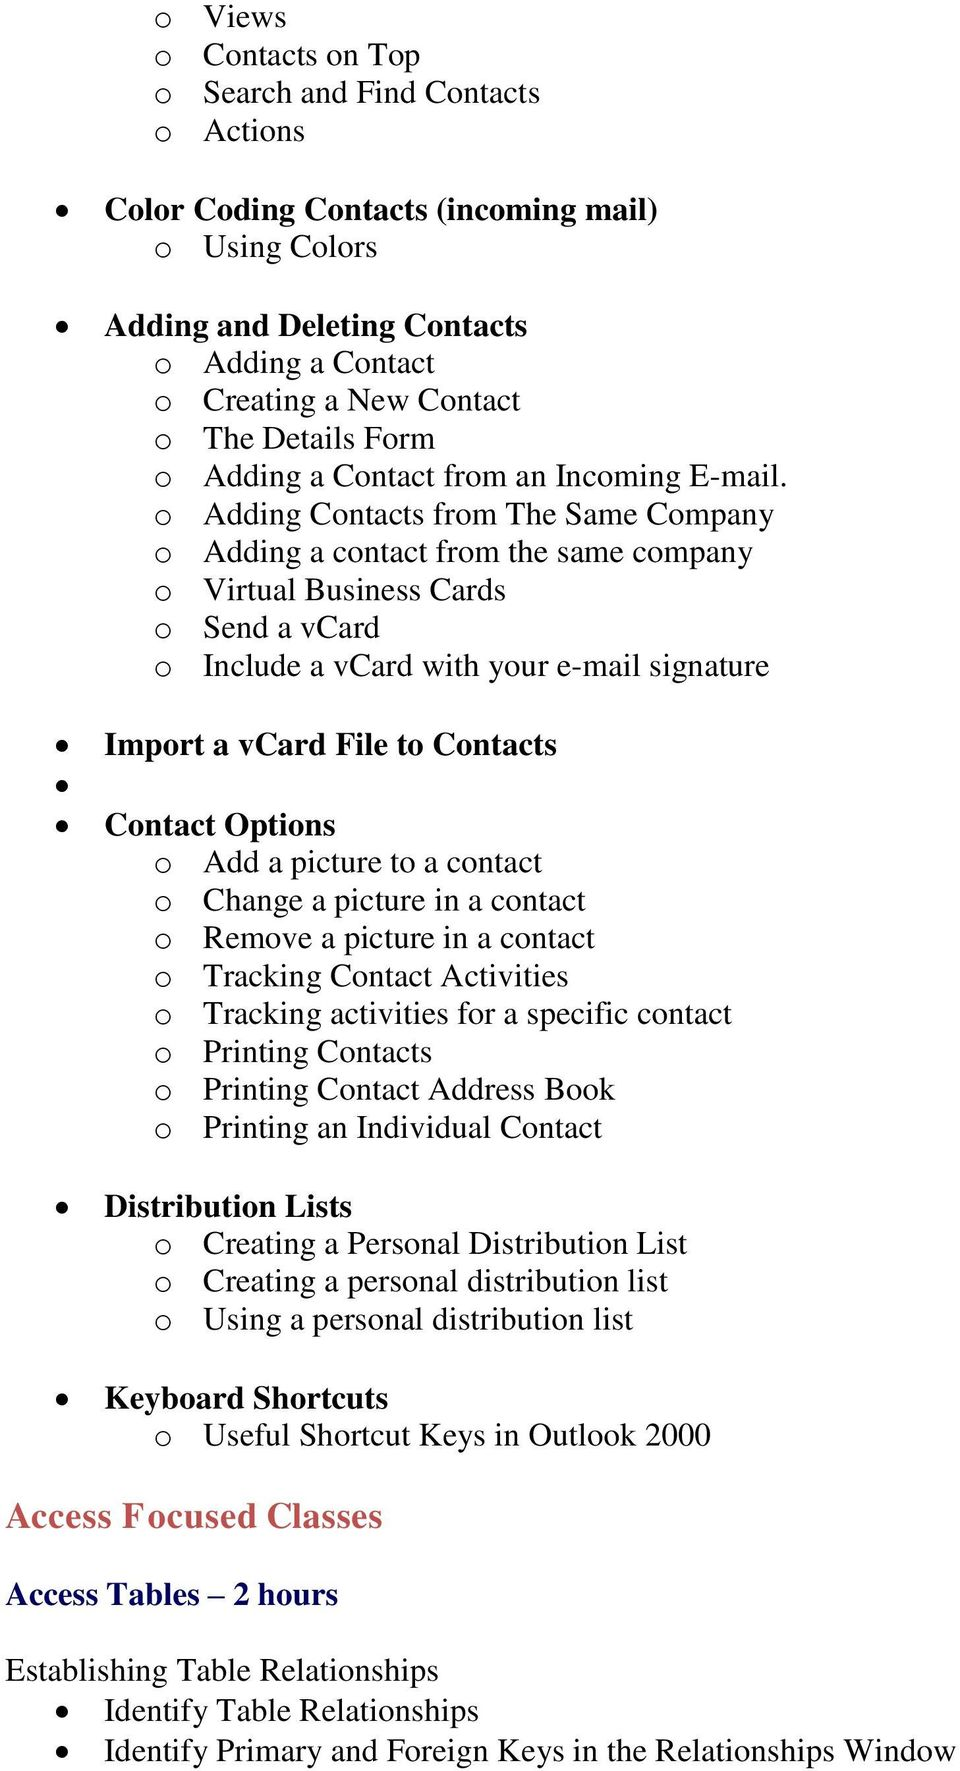 o Adding Contacts from The Same Company o Adding a contact from the same company o Virtual Business Cards o Send a vcard o Include a vcard with your e-mail signature Import a vcard File to Contacts